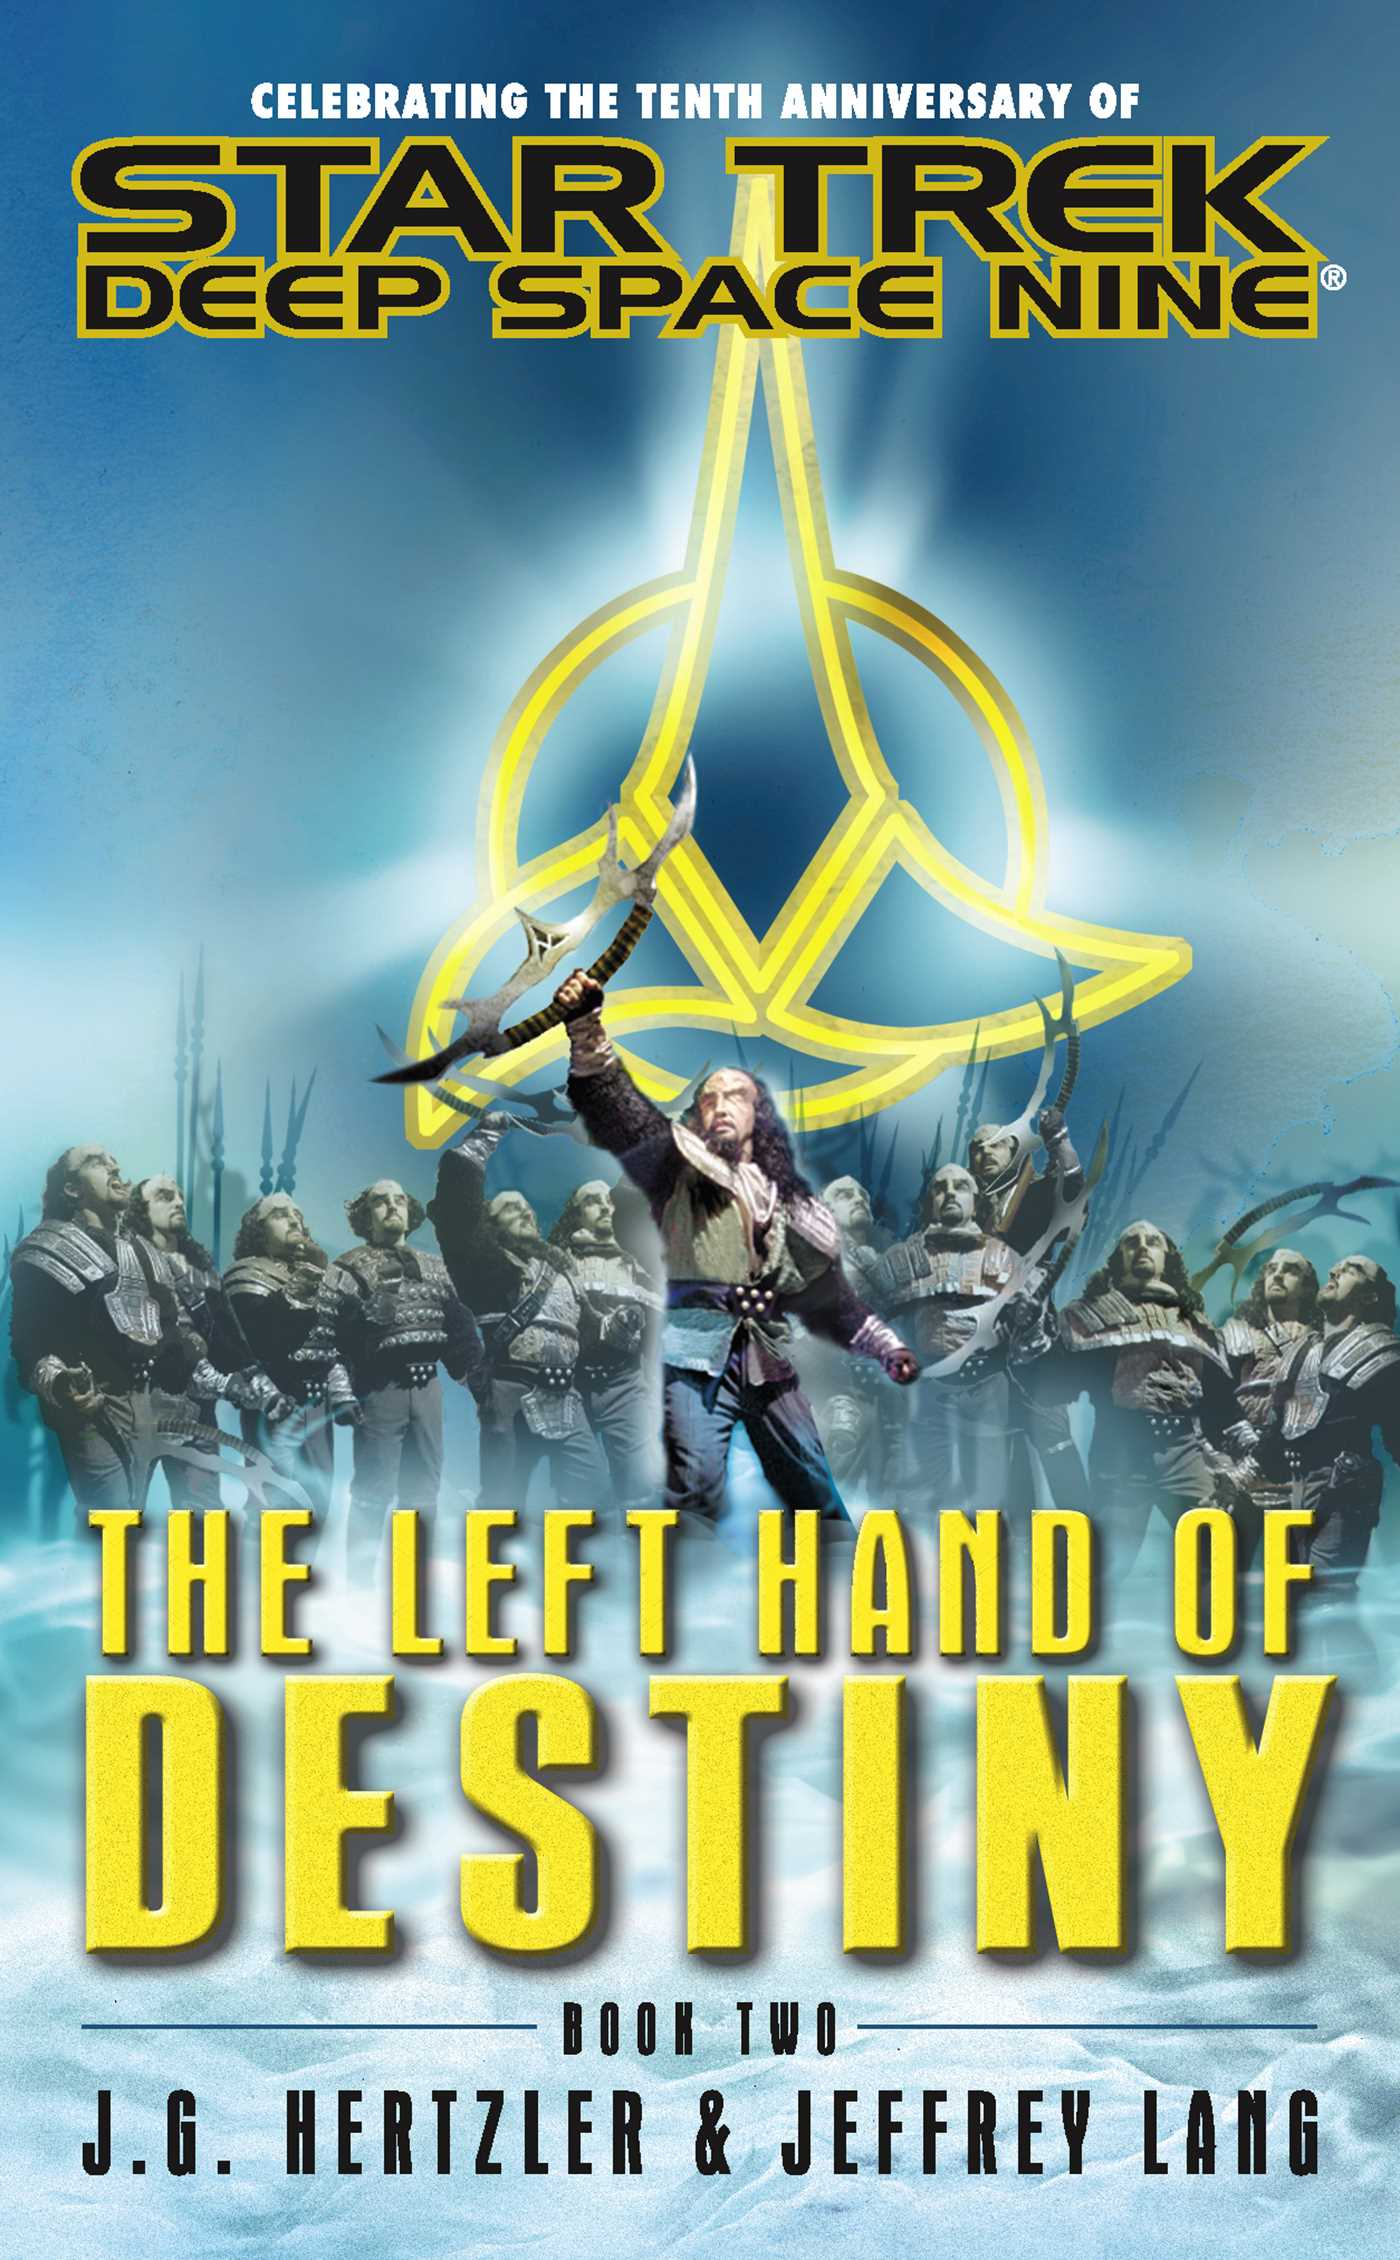 Star-trek-deep-space-nine-the-left-hand-of-destiny-book-two-9780743423298_hr